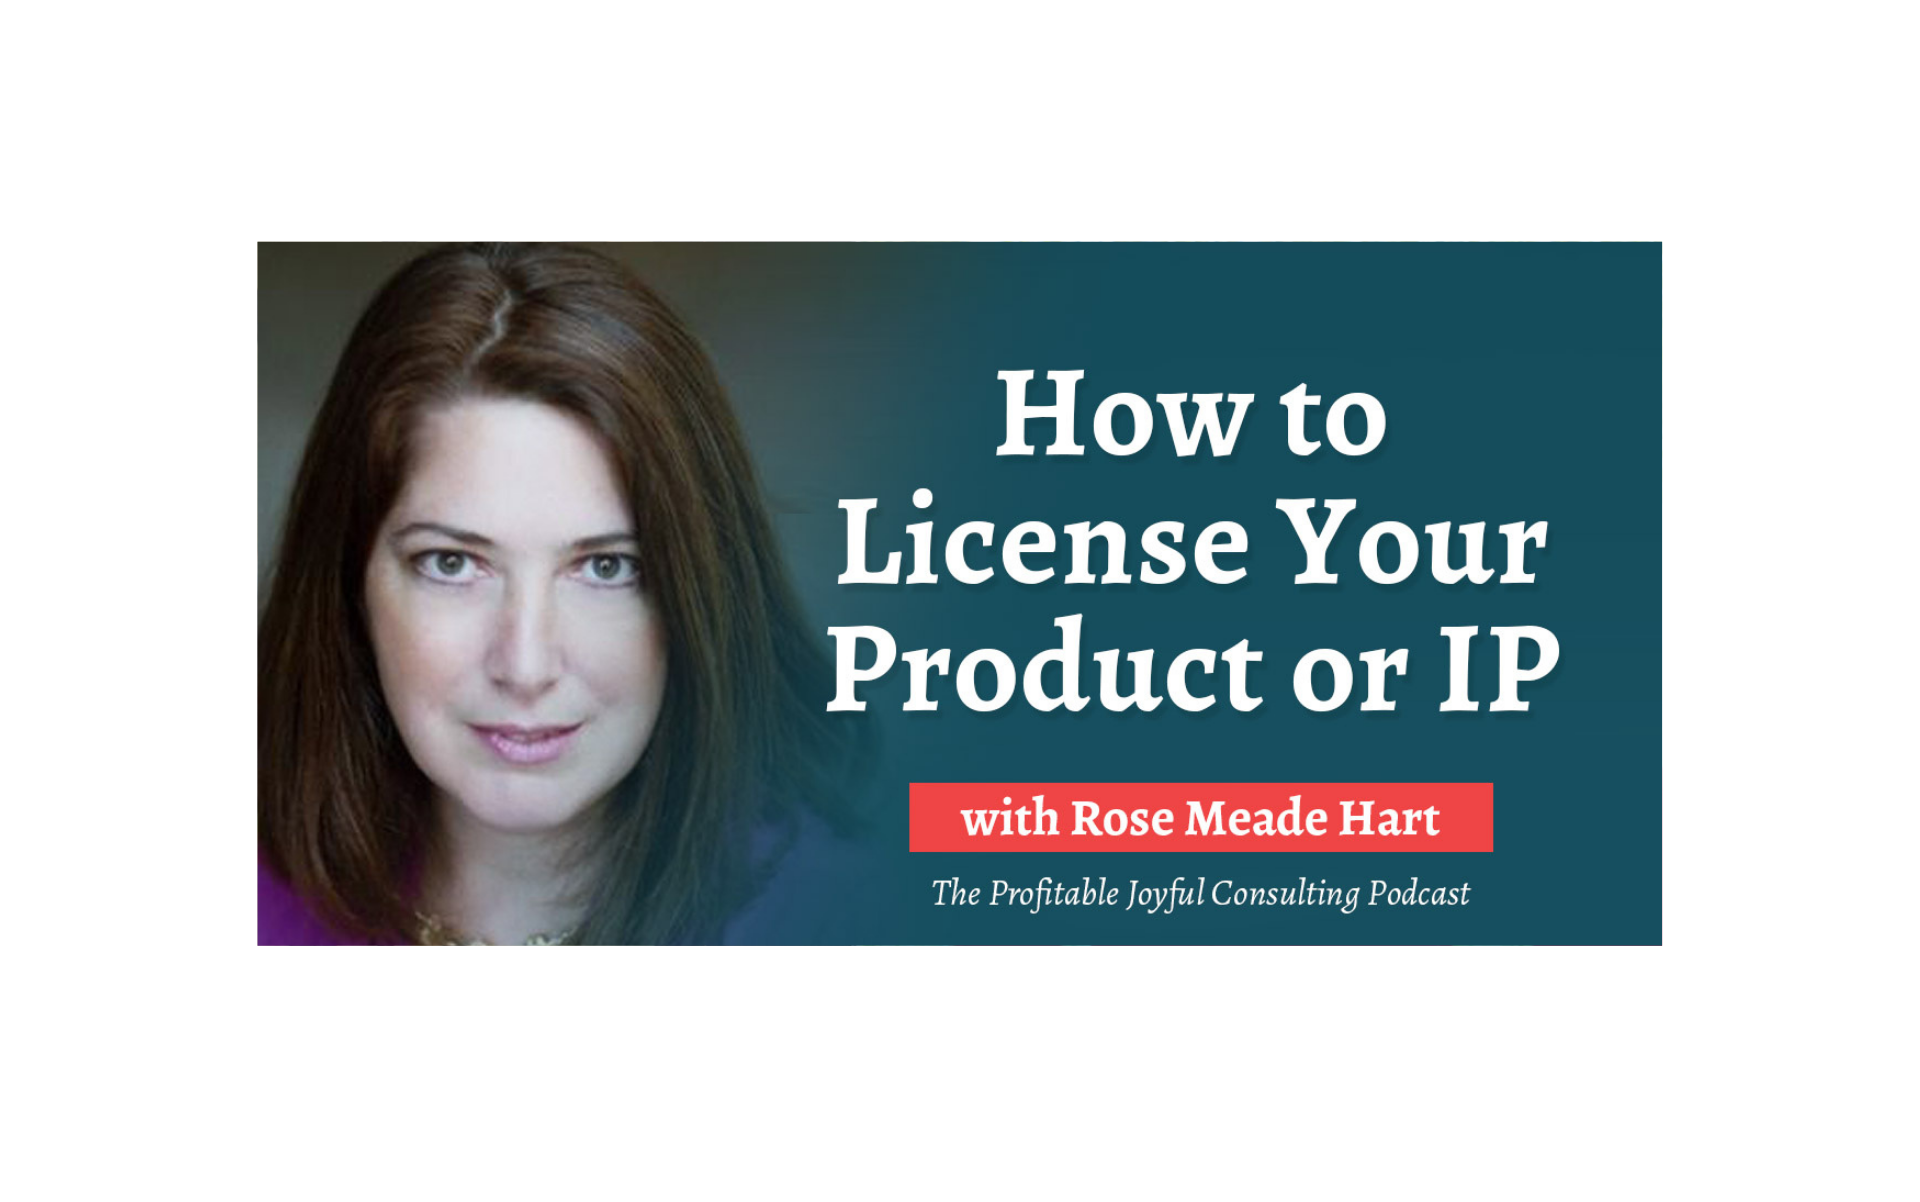 How to License Your Product or IP with Rose Meade Hart